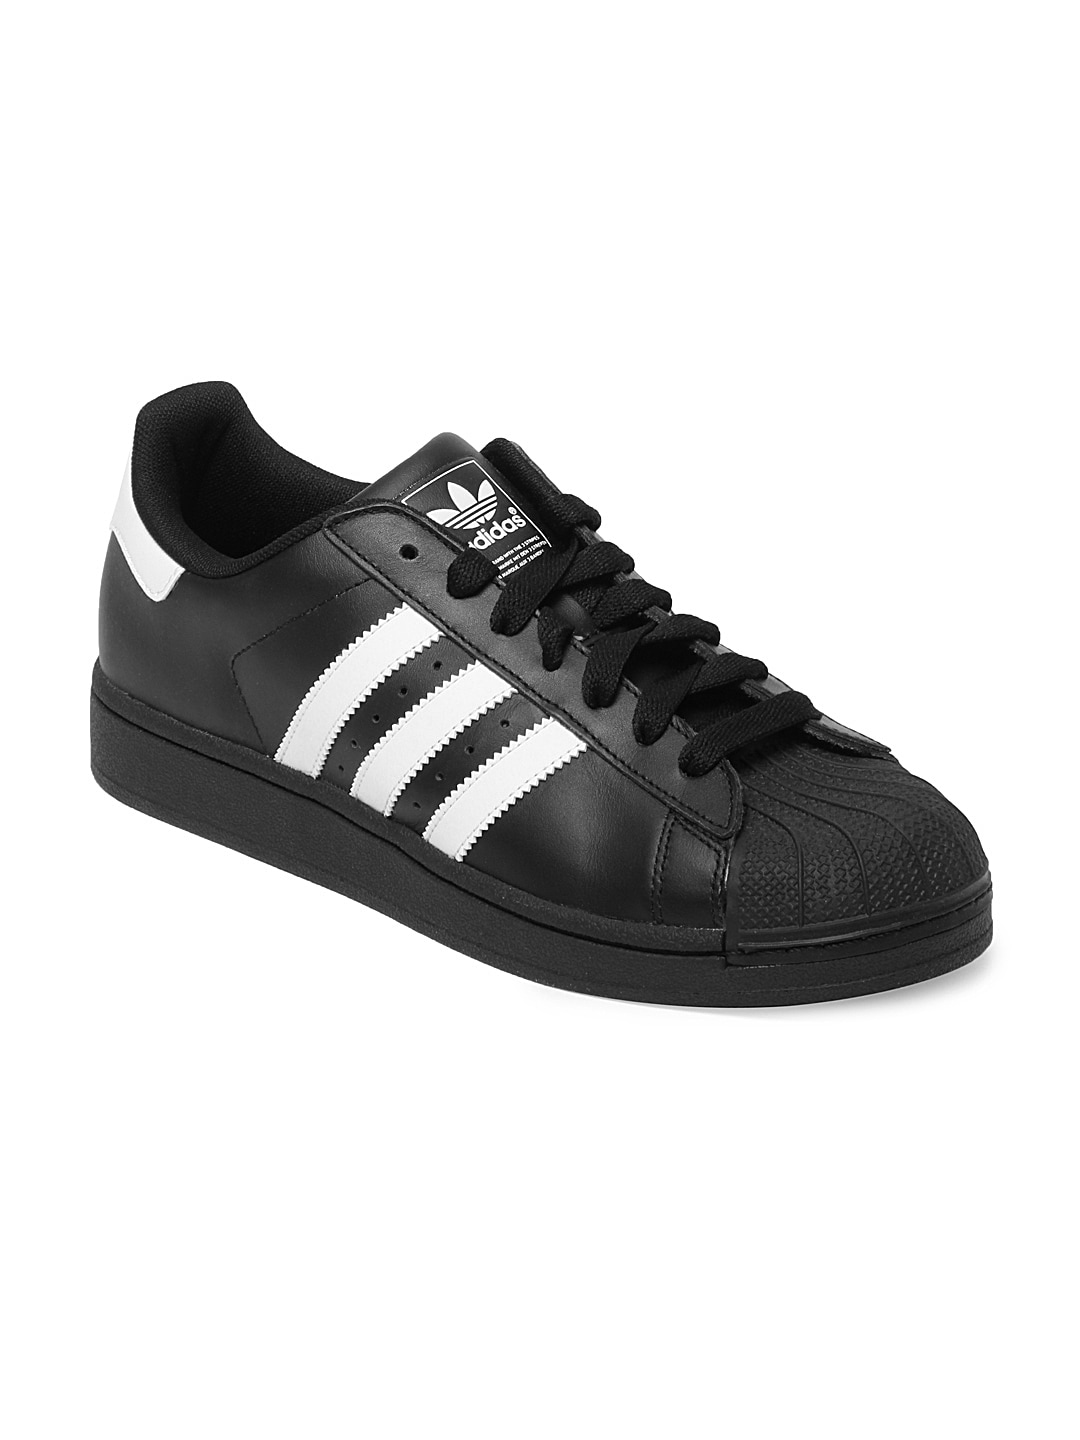 98754b0d2c Buy 2 OFF ANY adidas originals sneakers black CASE AND GET 70% OFF!